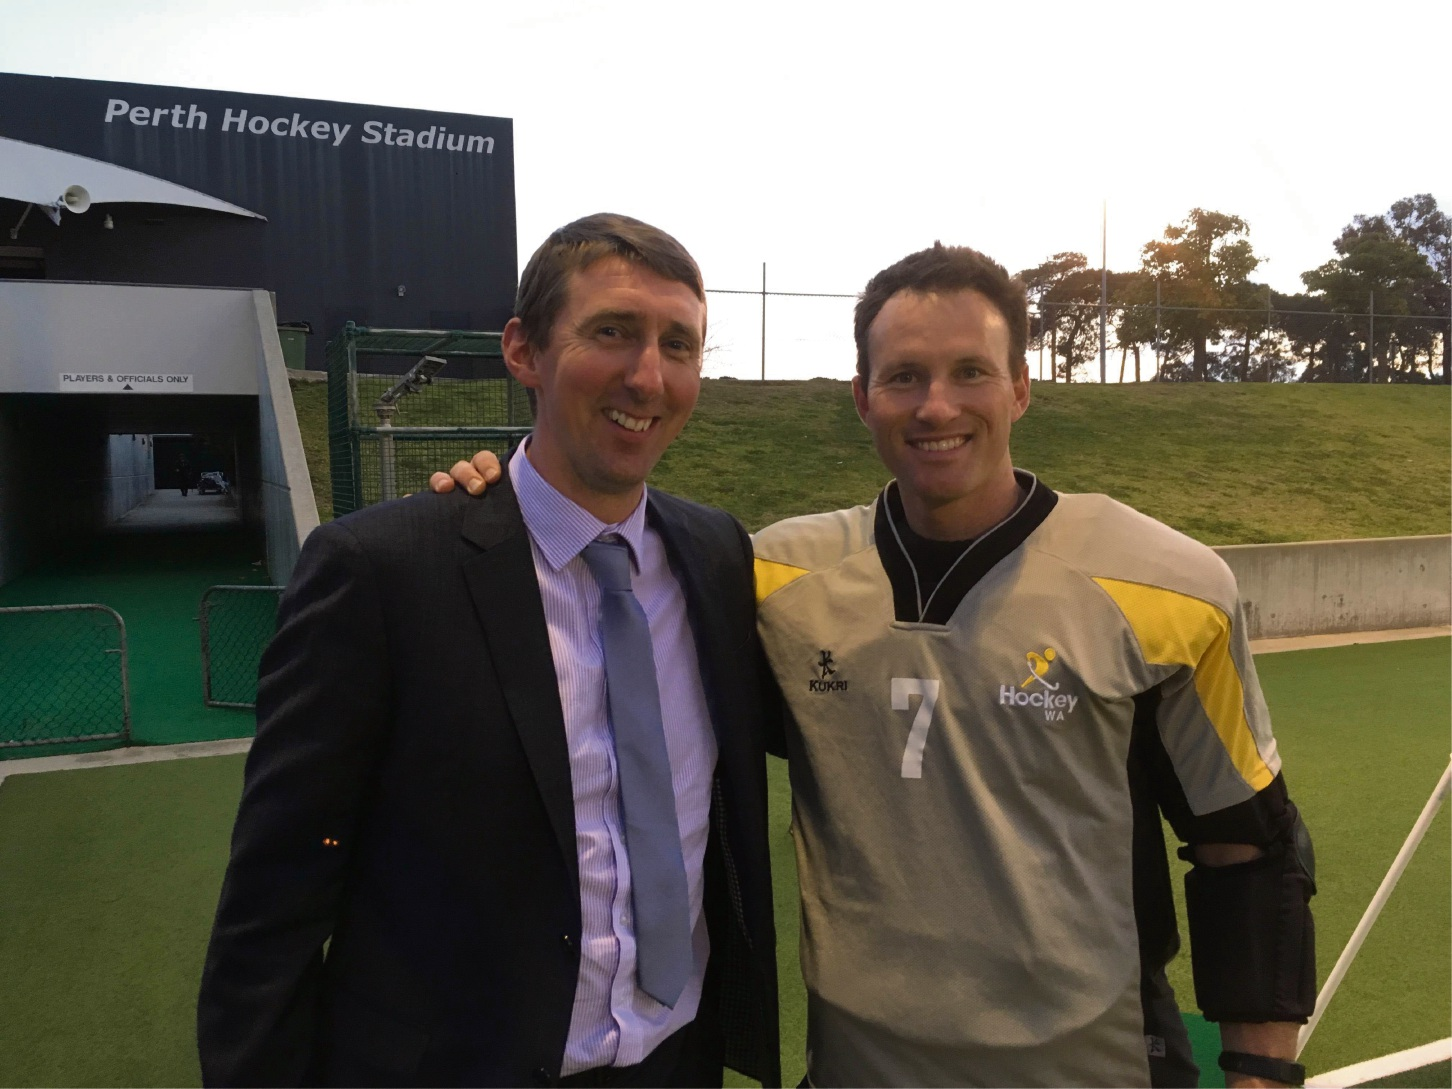 Richard Davies with Australian hockey player Tyler Lovell.